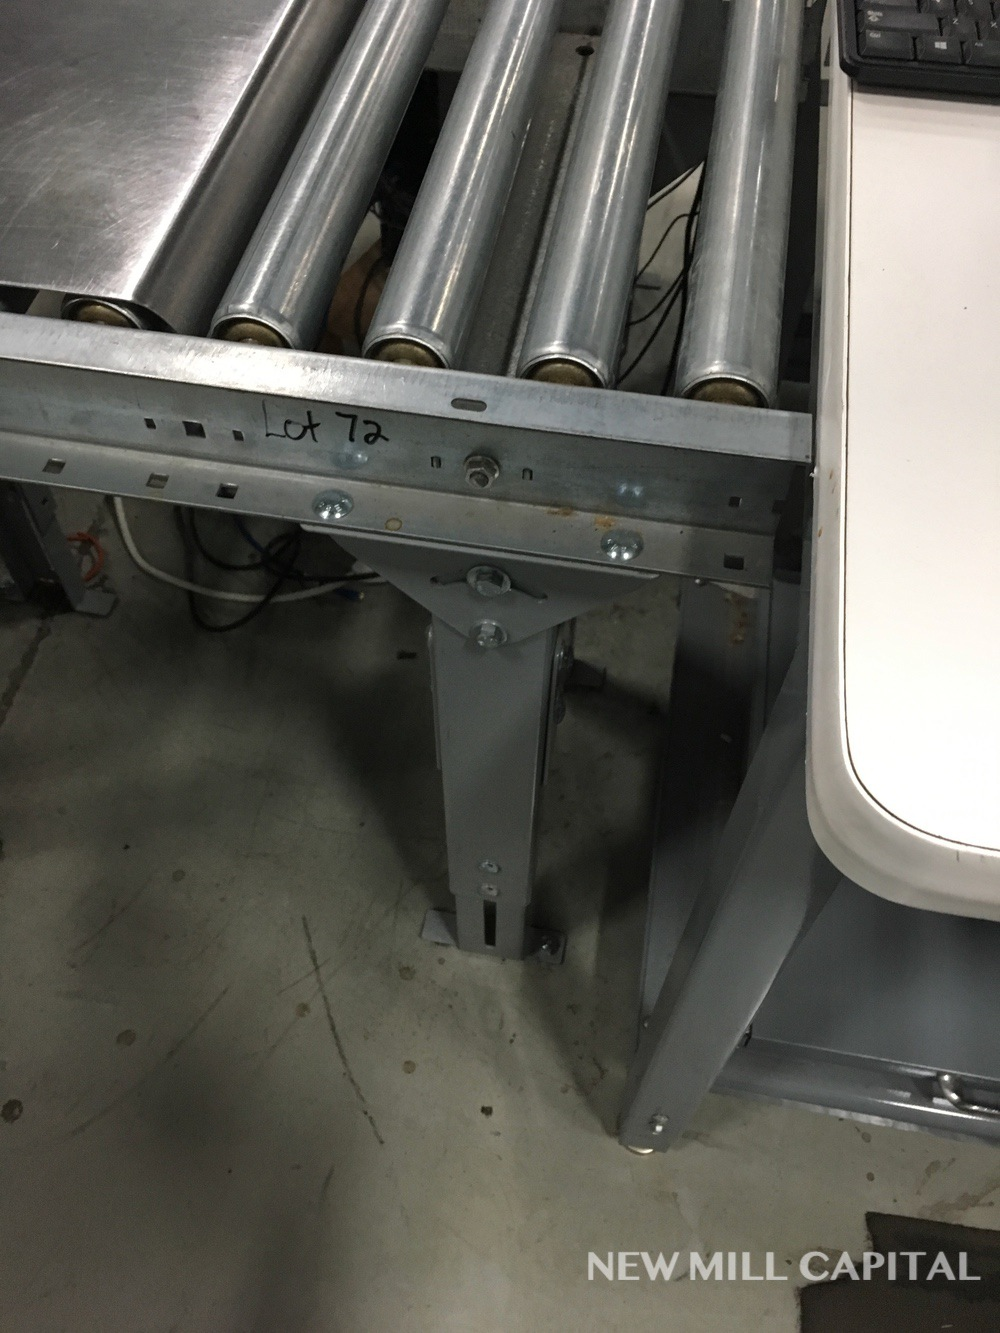 Lot 72 - (2) Roller Conveyors, Manual, Approx 3ft OA Length, 15in Rollers, 18in OA Width | Rig Fee: $150